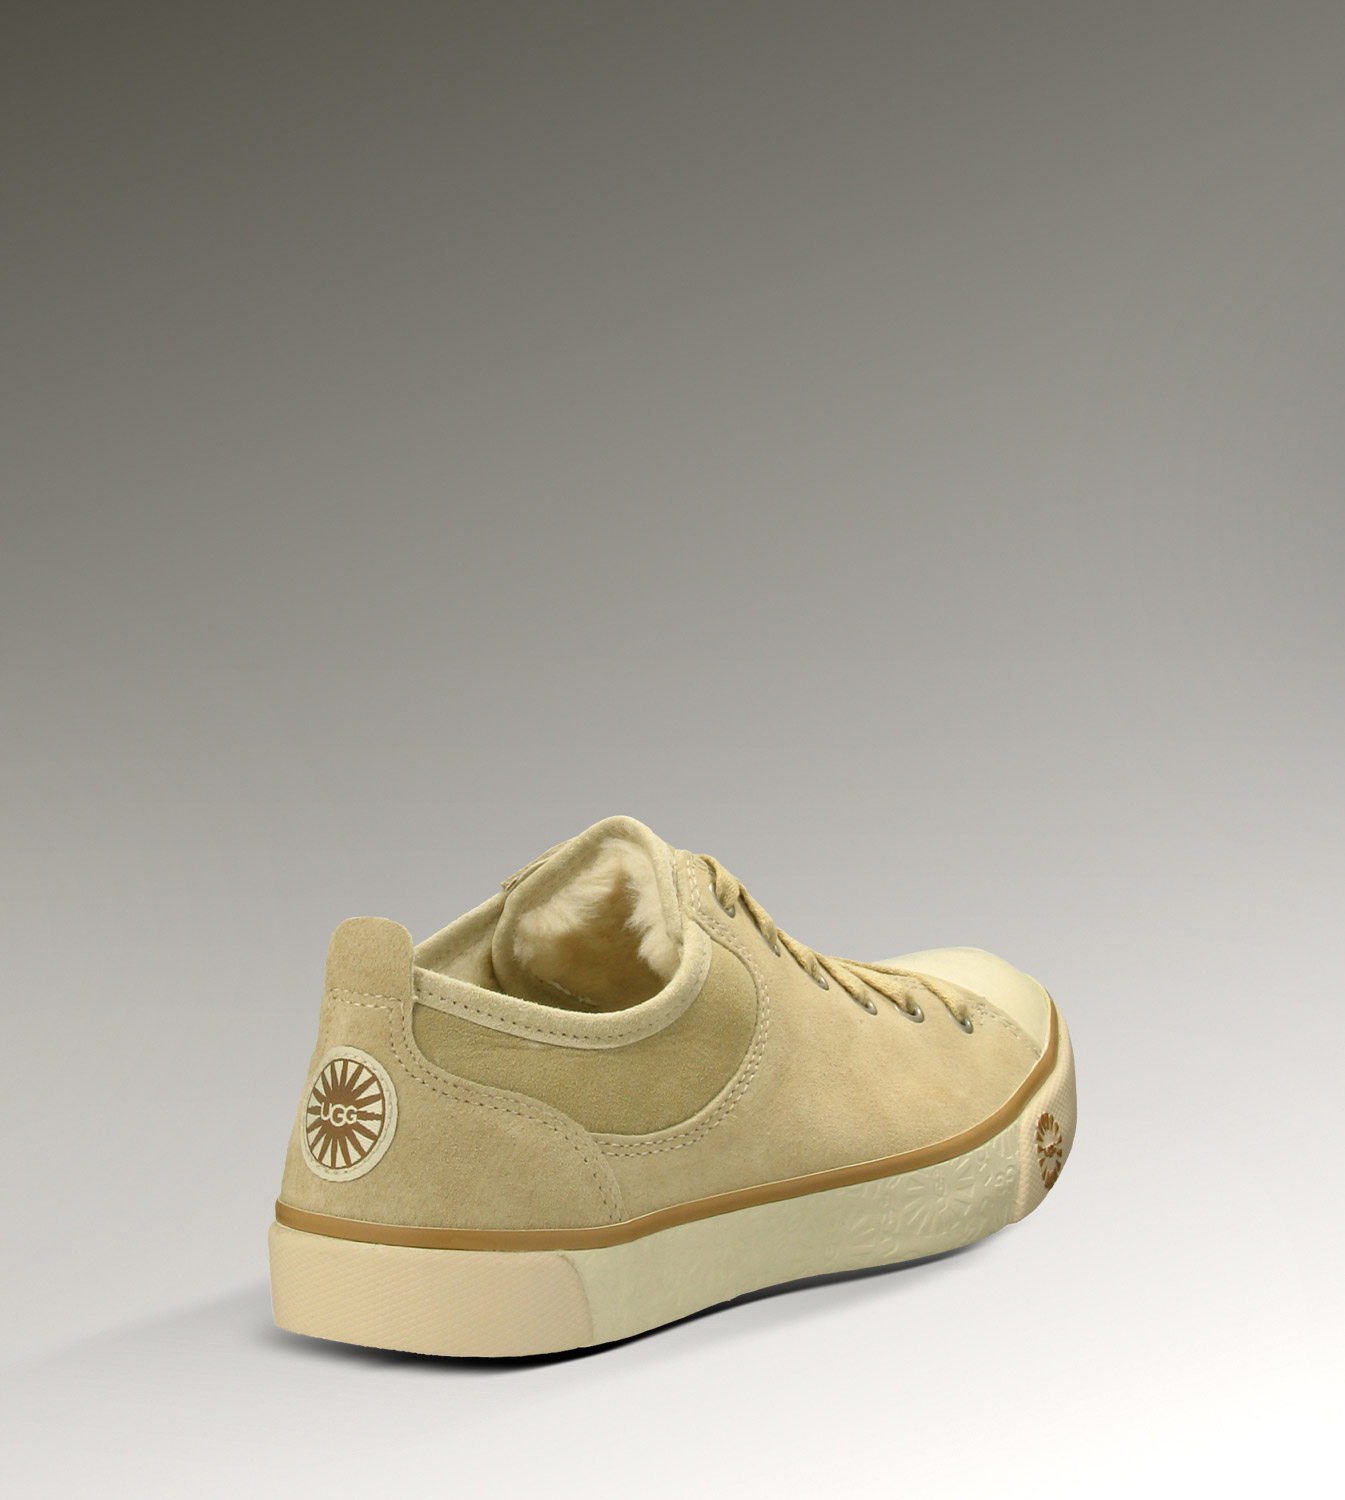 UGG Evera 1888 Sand Sneakers